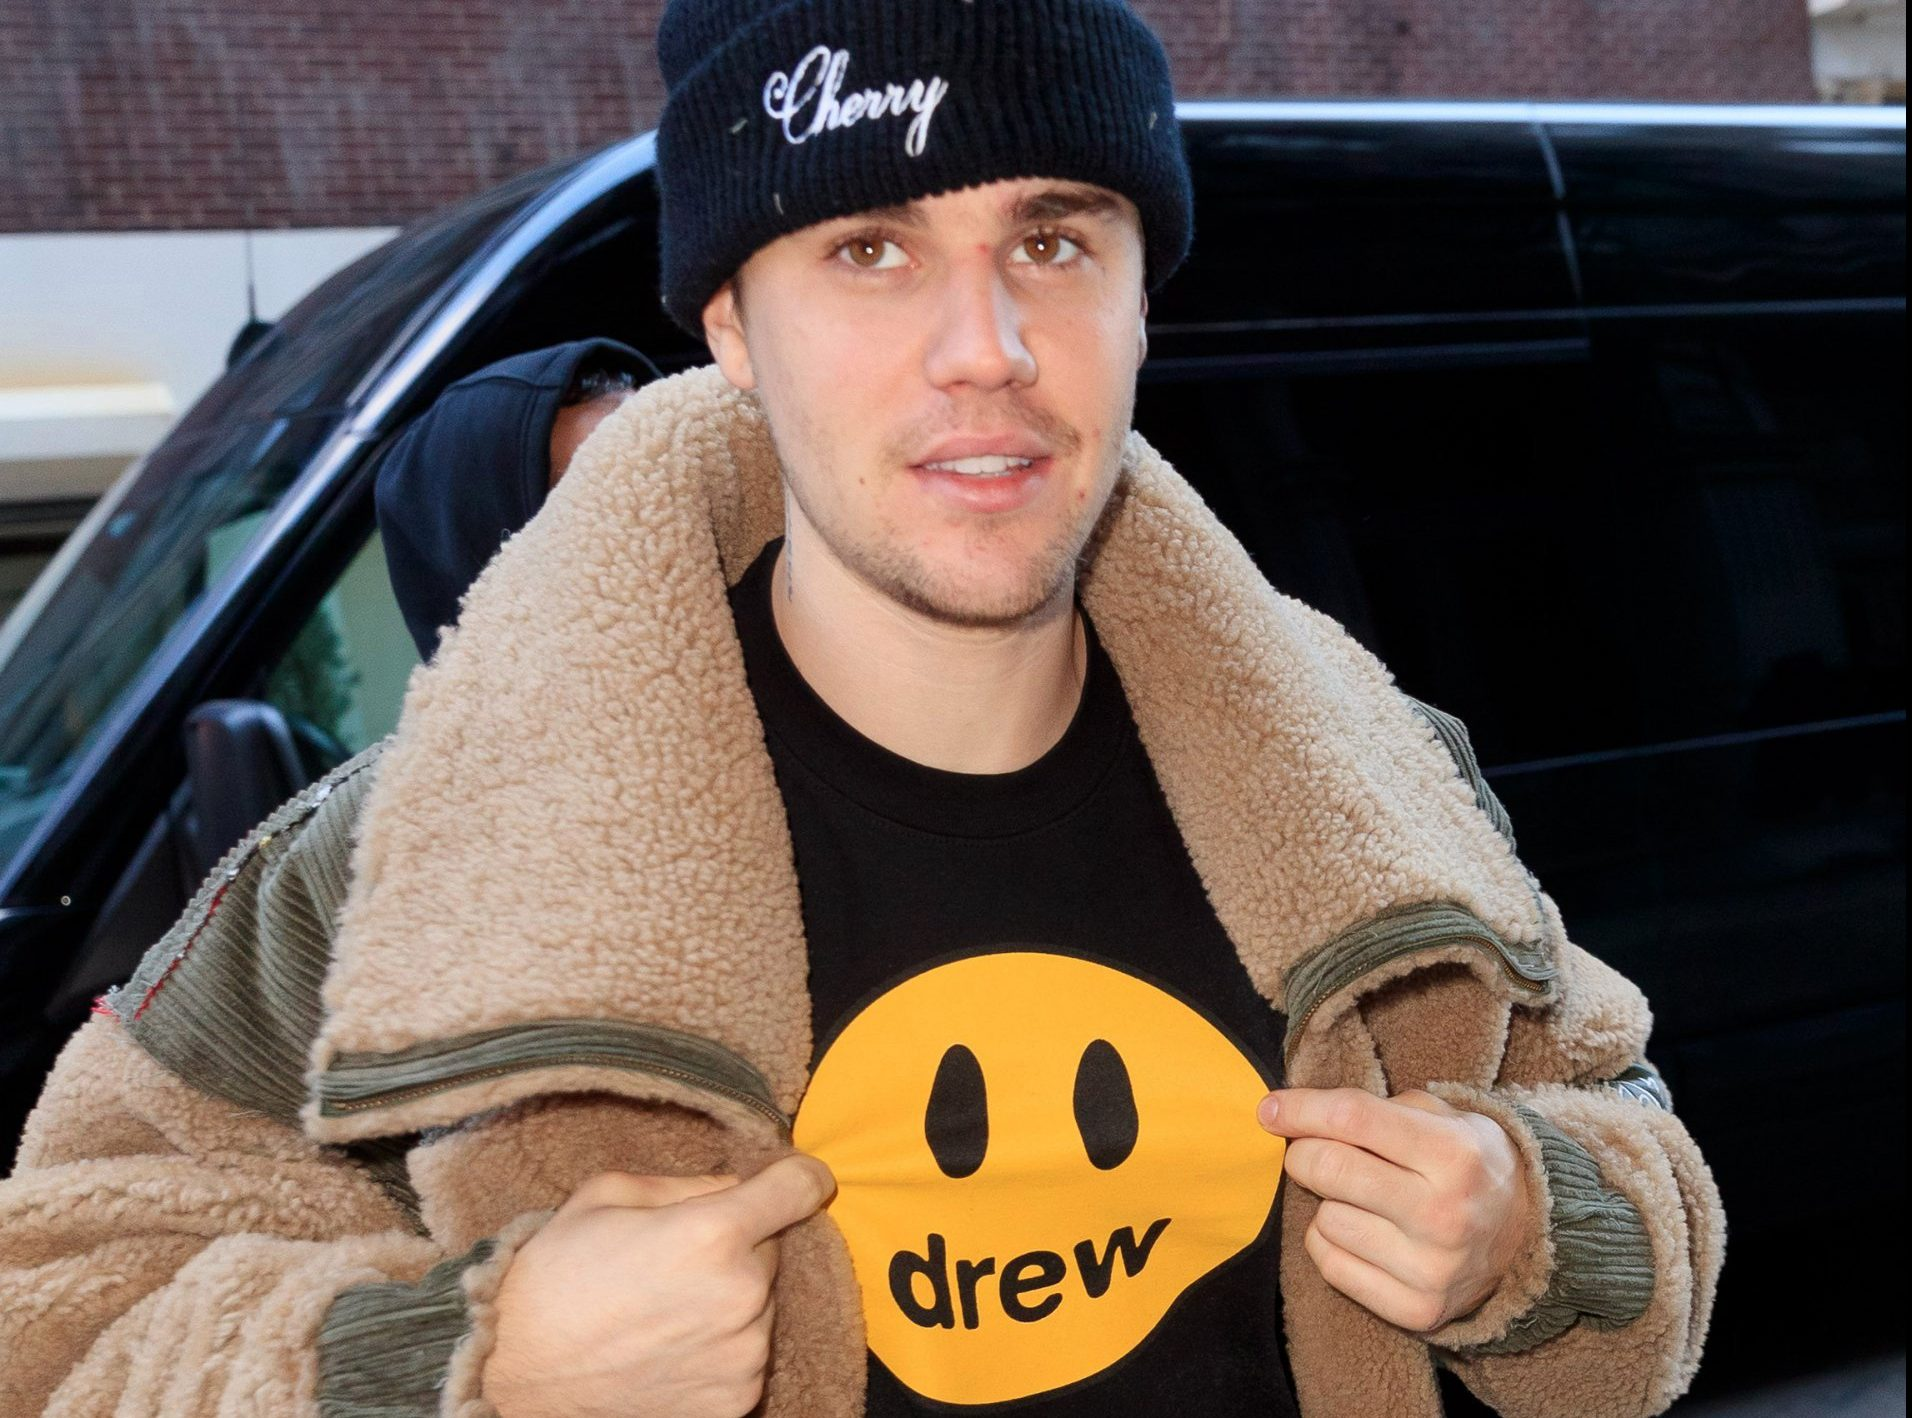 Justin Bieber is dropping a new song next week despite announcing break from music